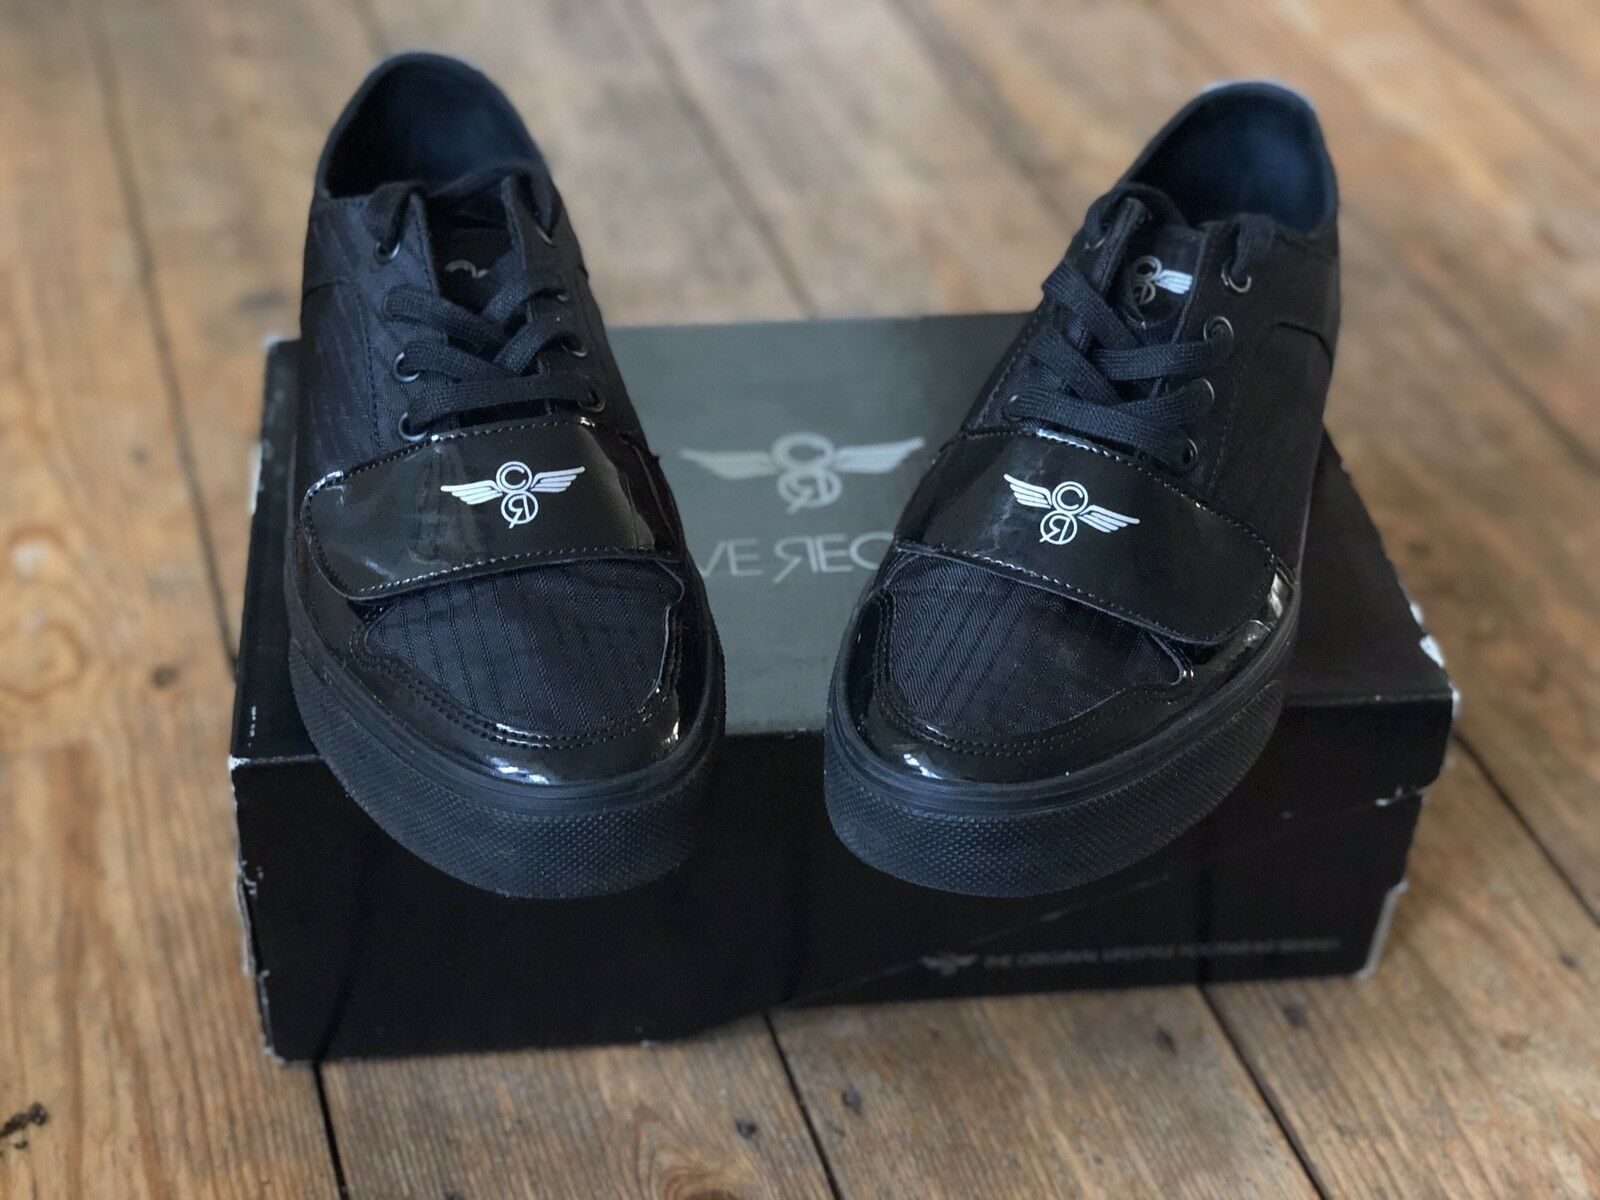 Creative Recreations Black UK Size 8. Excellent Condition. With Box.